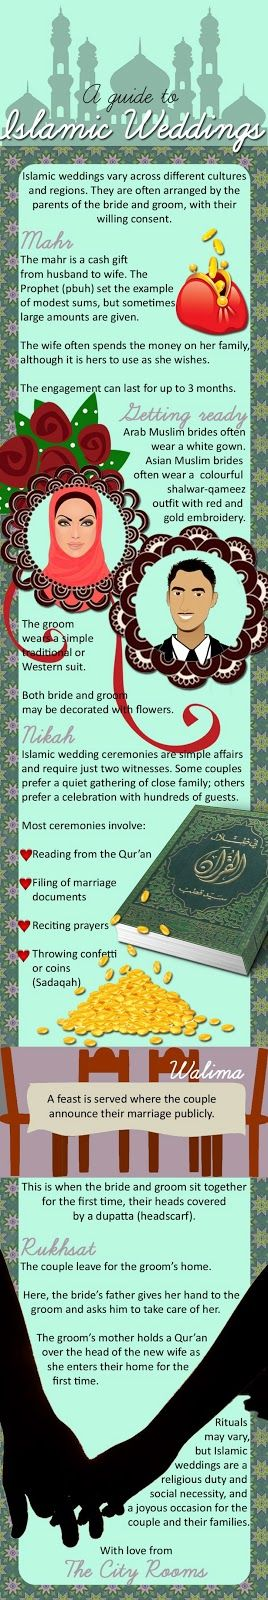 Muslim Wedding Infographic  They have very nice traditions